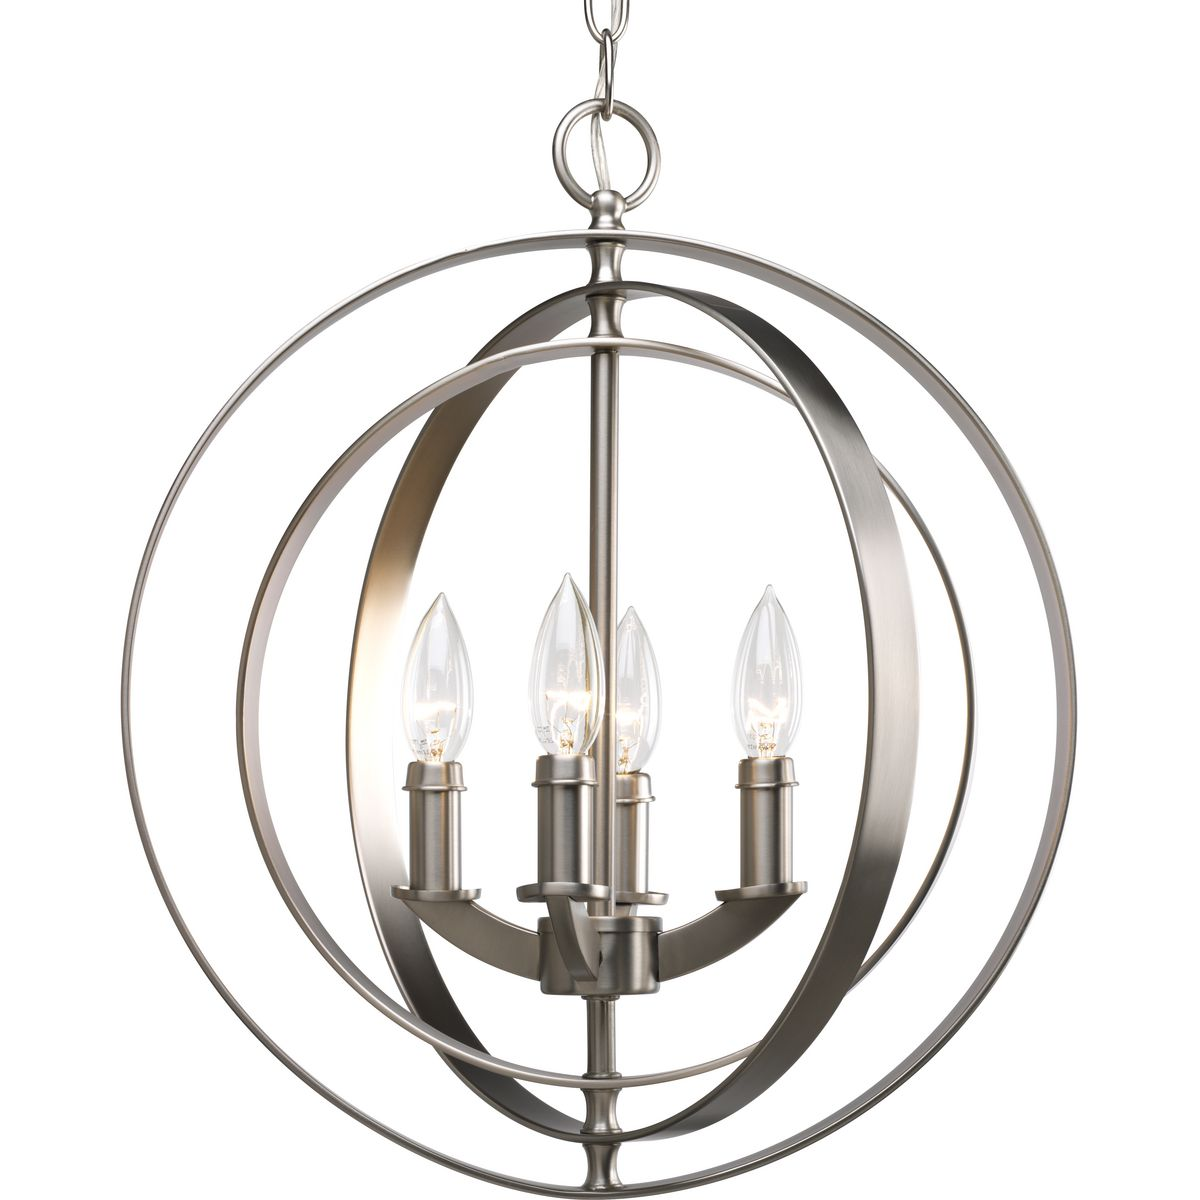 PRO P3827-126 Four Light Burnished Silver Equinox Chandelier 4X60C